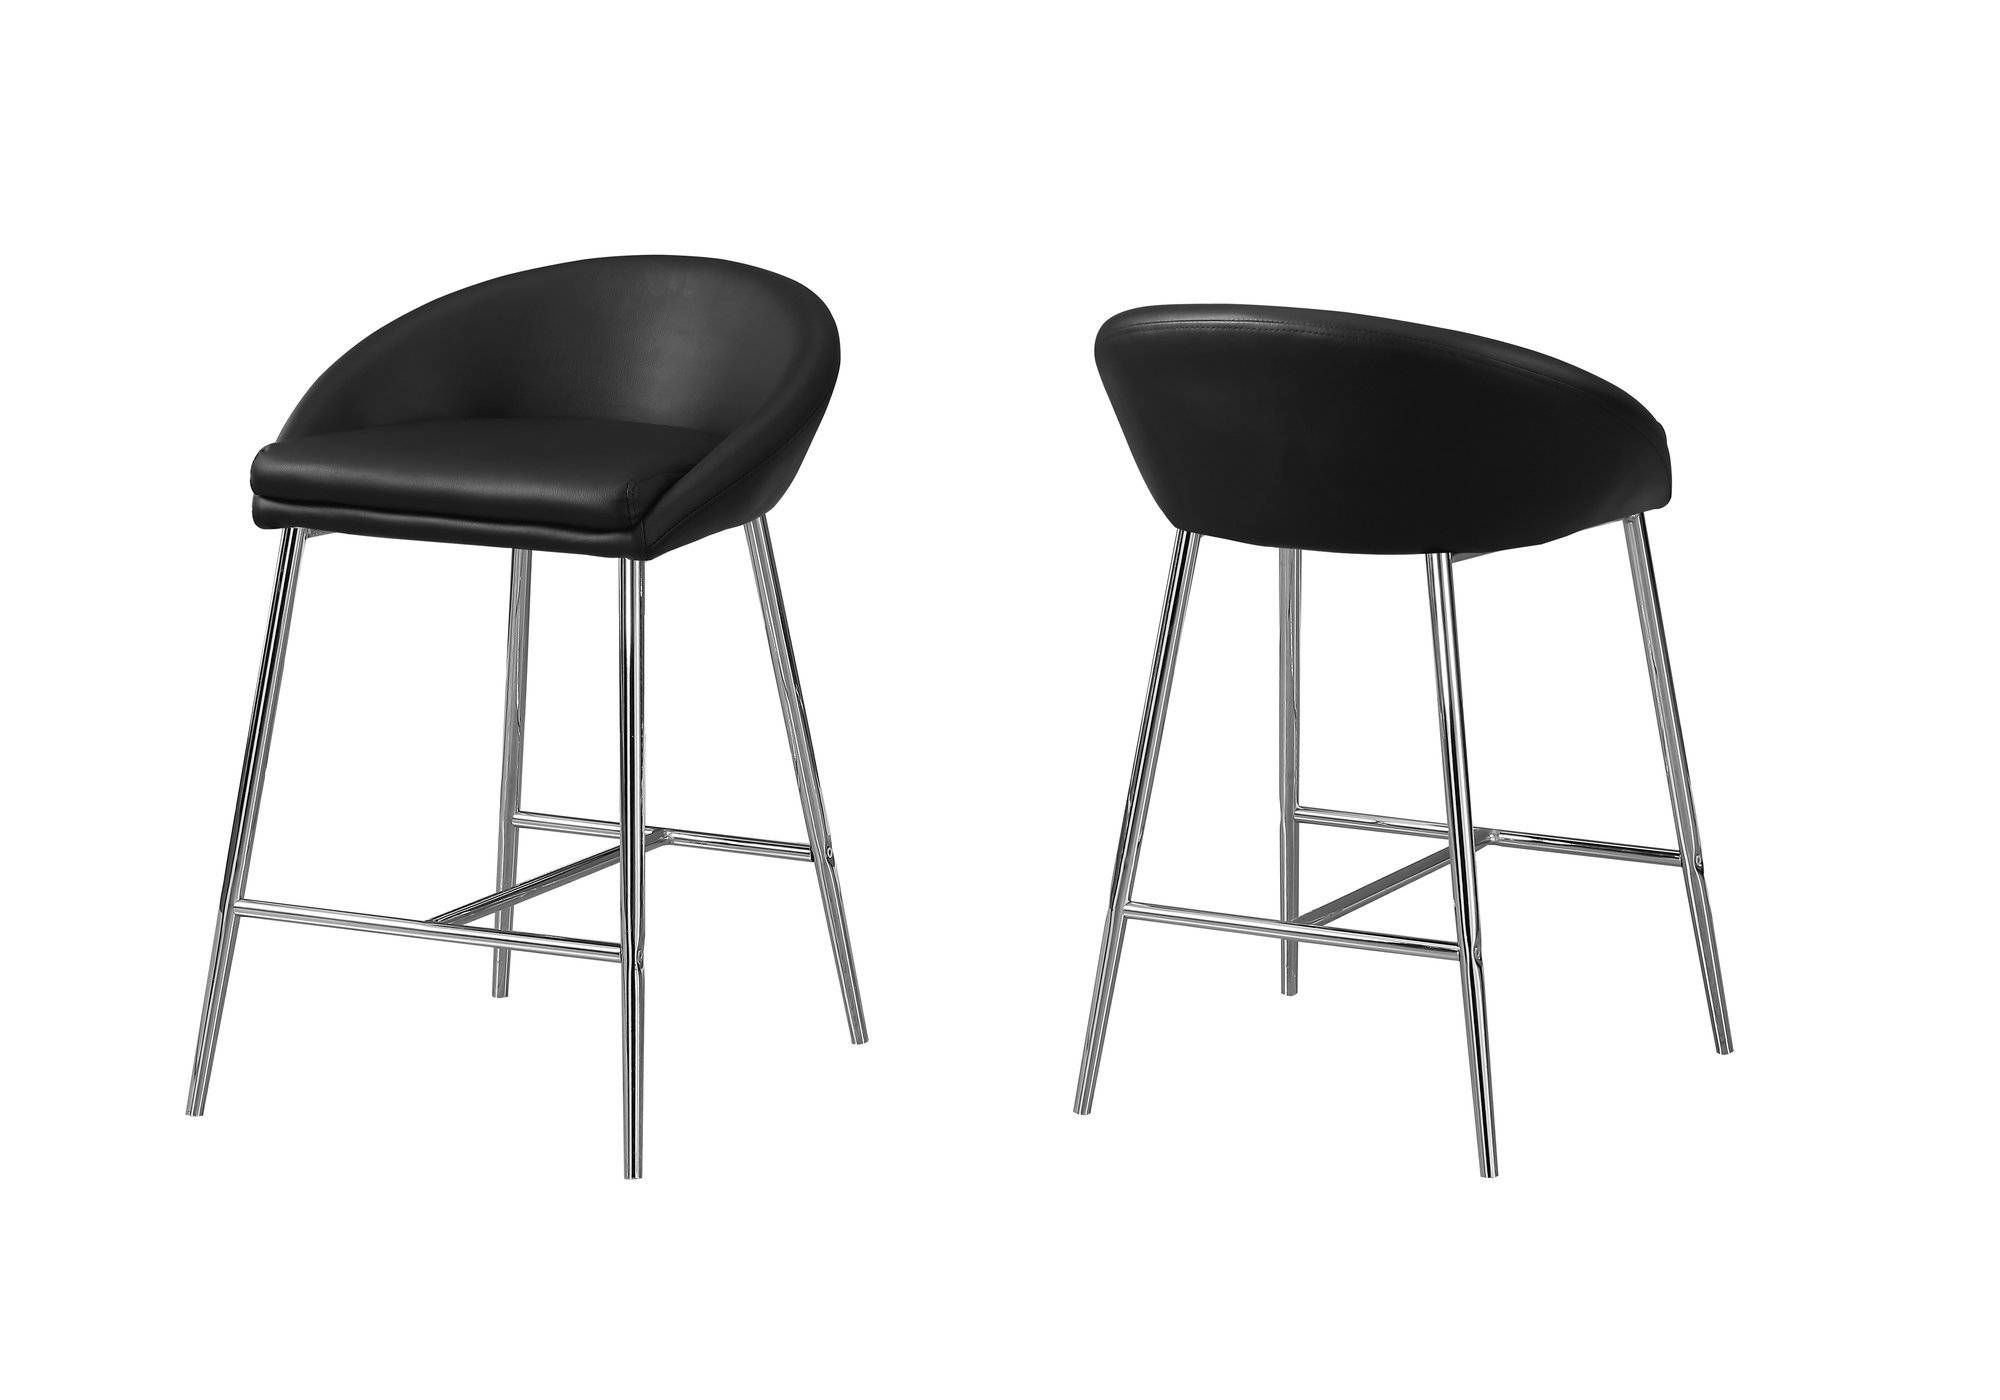 Magnificent 2 Monarch Specialties Black Leather Counter Height Stools Pabps2019 Chair Design Images Pabps2019Com